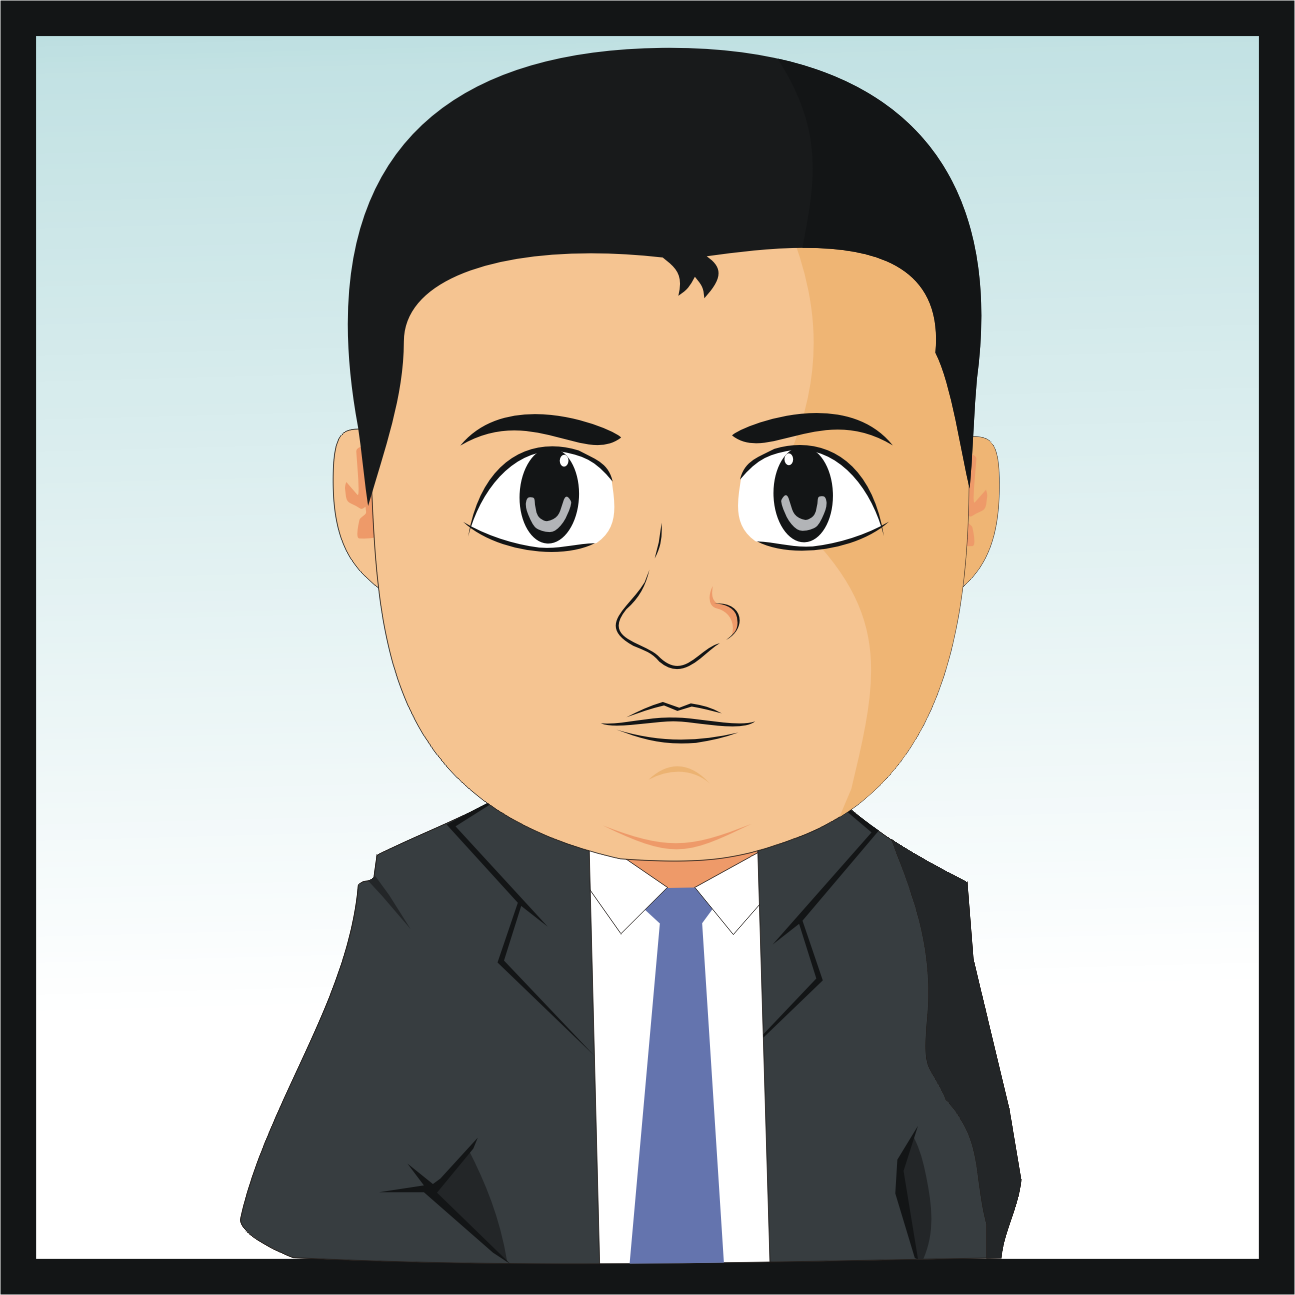 Create Cute Avatar Vector Of You In My Style For 5